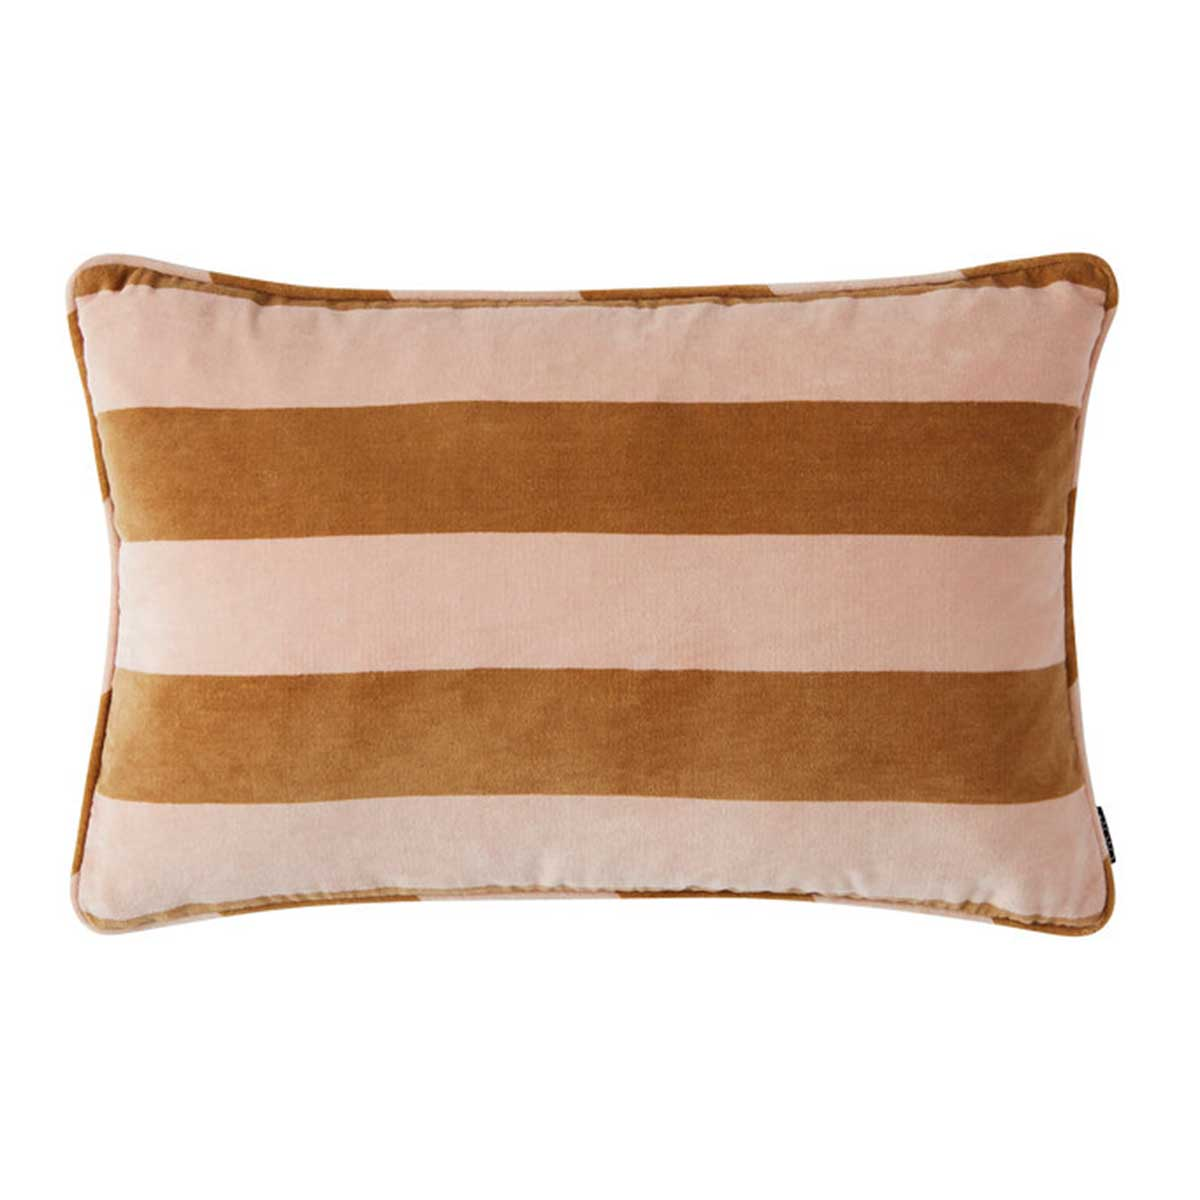 Confection Striped Cushion in Rose and Caramel<br>by OYOY